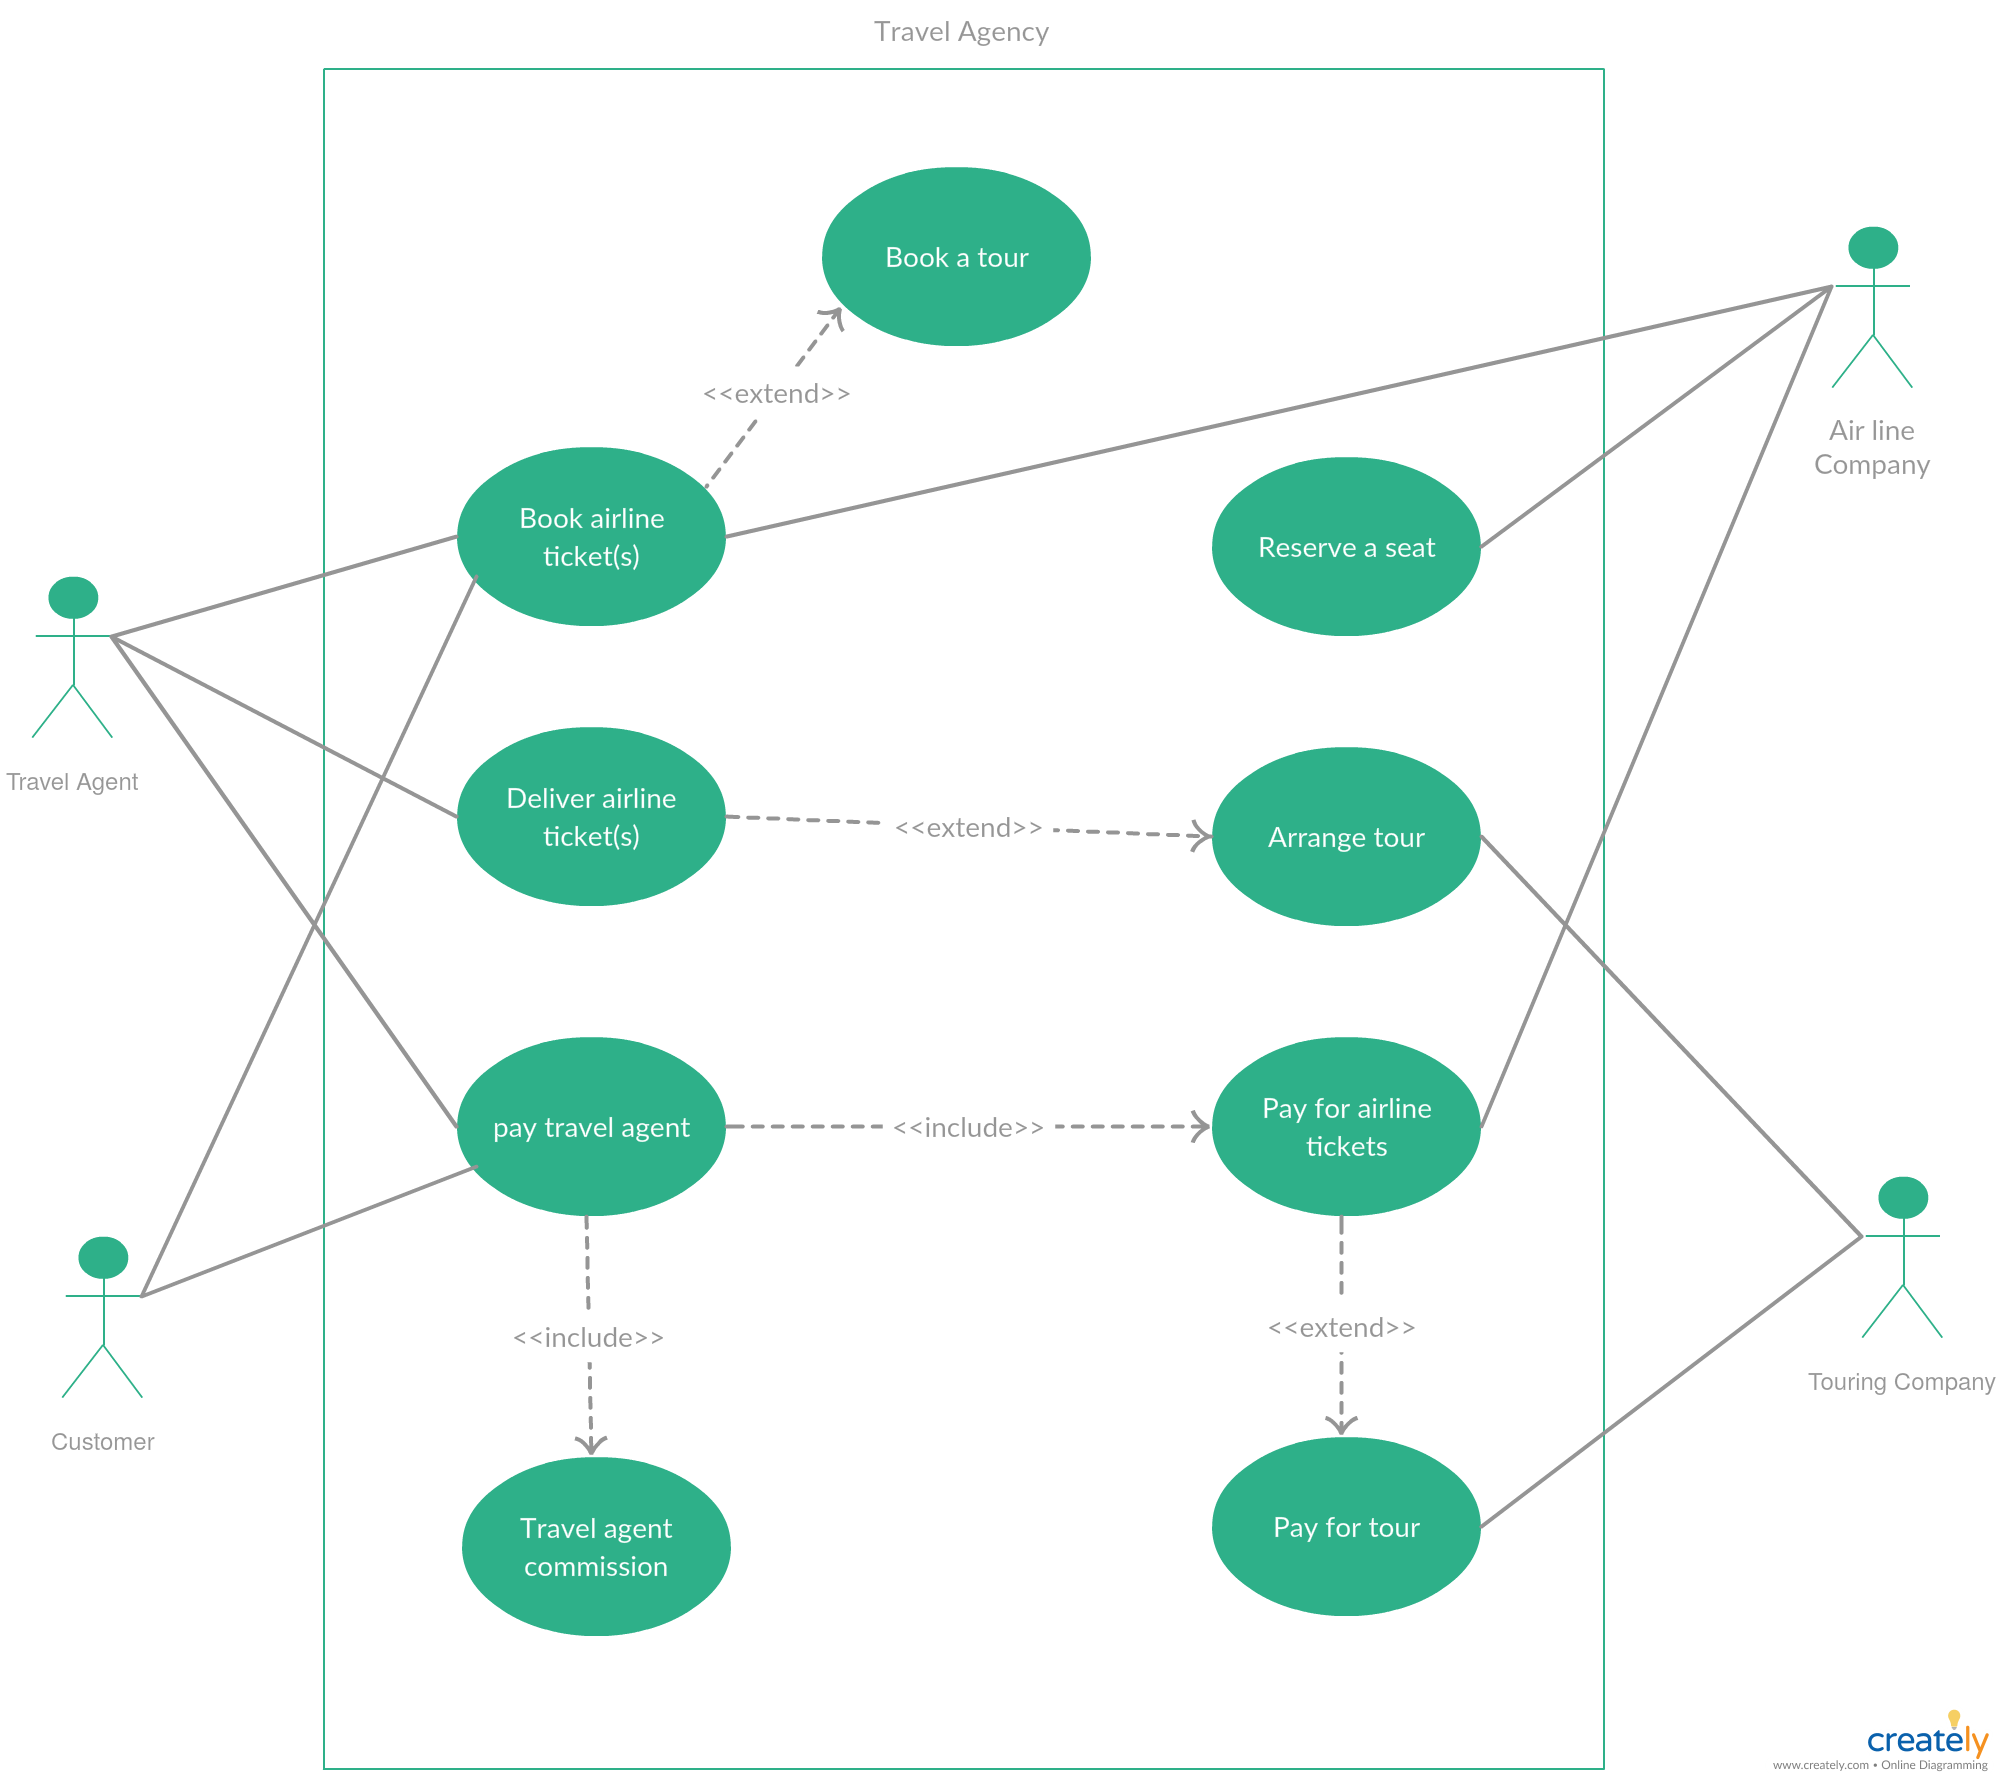 Uml Diagram Types Learn About All 14 Types Of Uml Diagrams Use Case Travel Agency Use Case Diagram